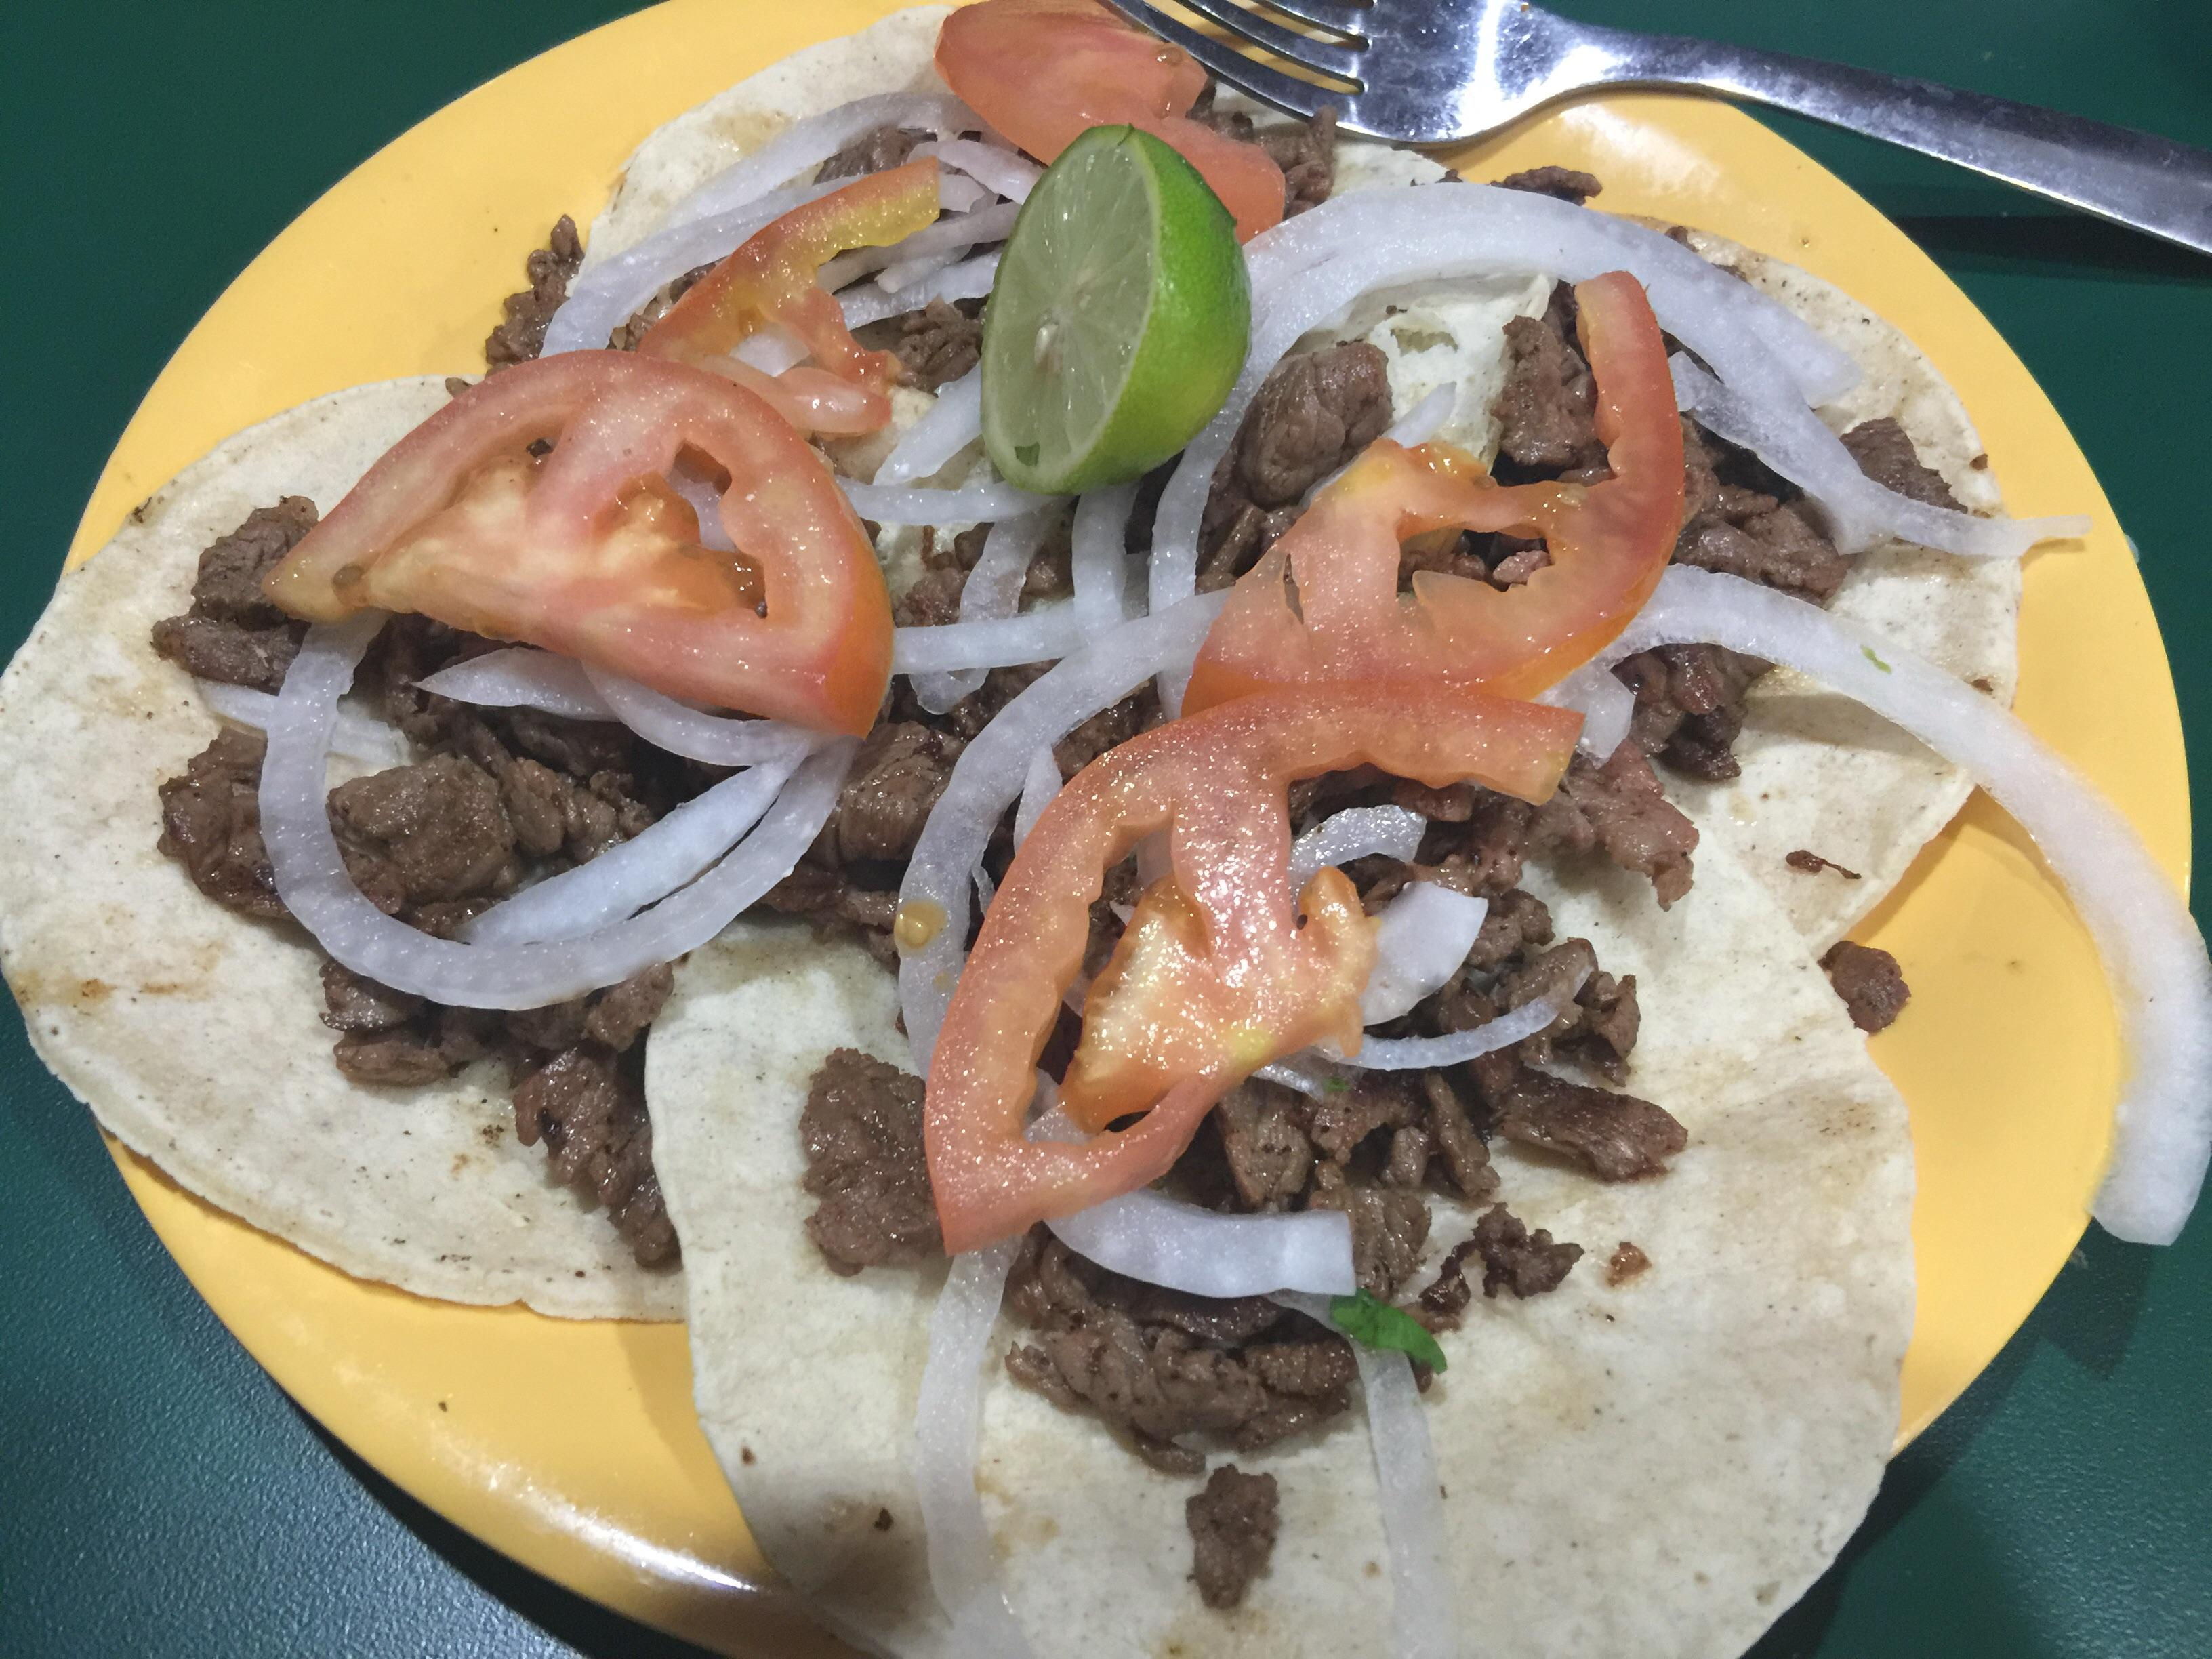 Tacos at El Cometa excellent beef $7.50 #food